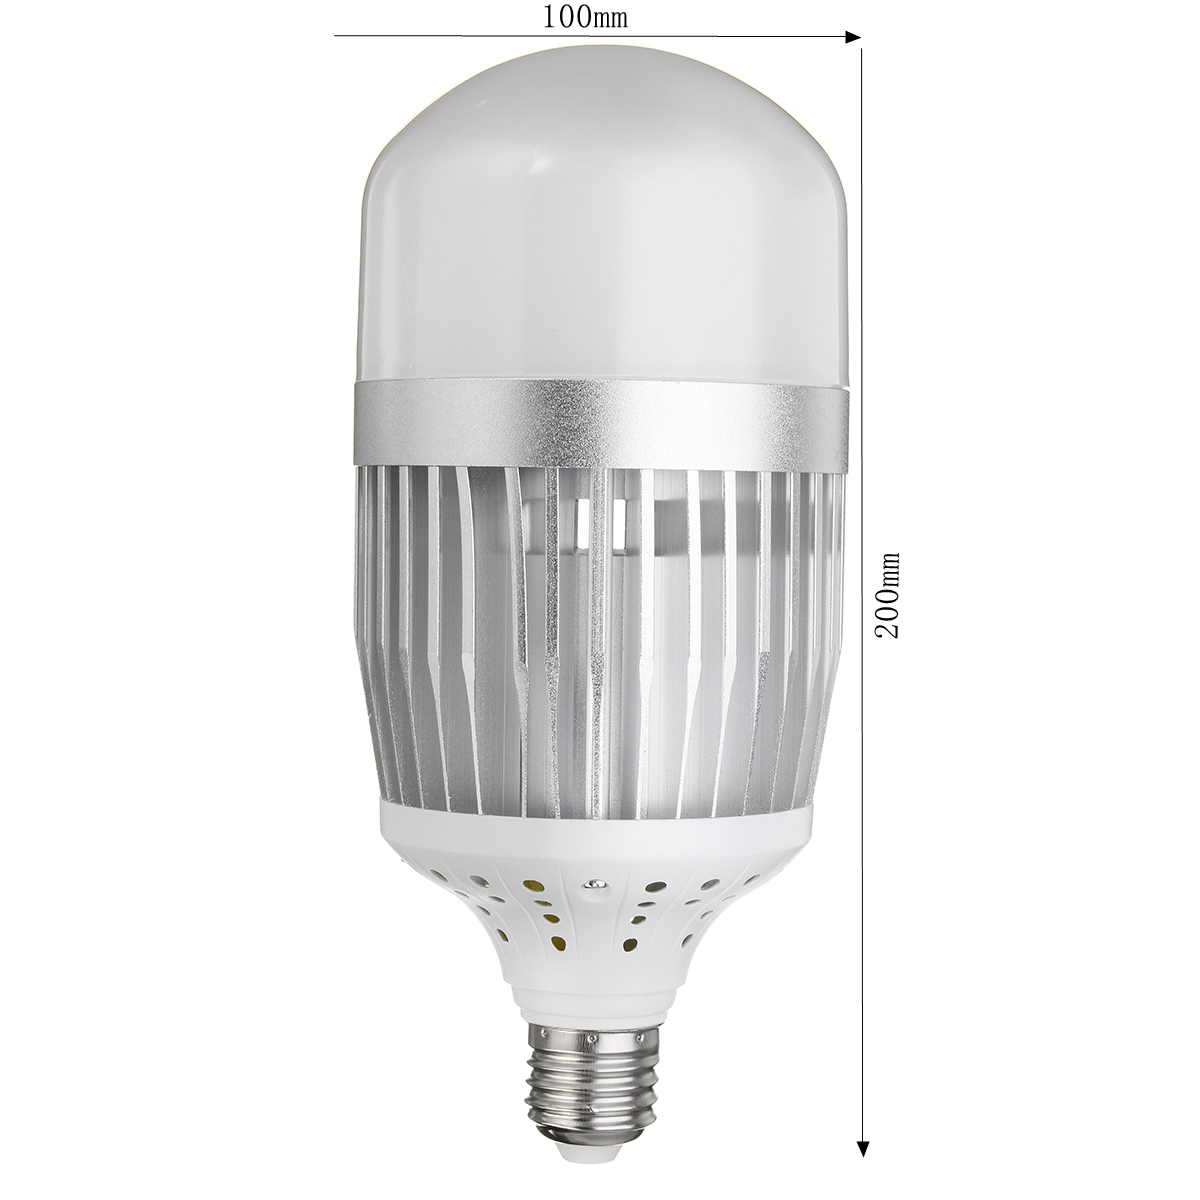 E27 50W SMD3030 30LEDs 100LM/W Warm White Pure White High Bay Light Bulb Factory Lamp AC85-265V